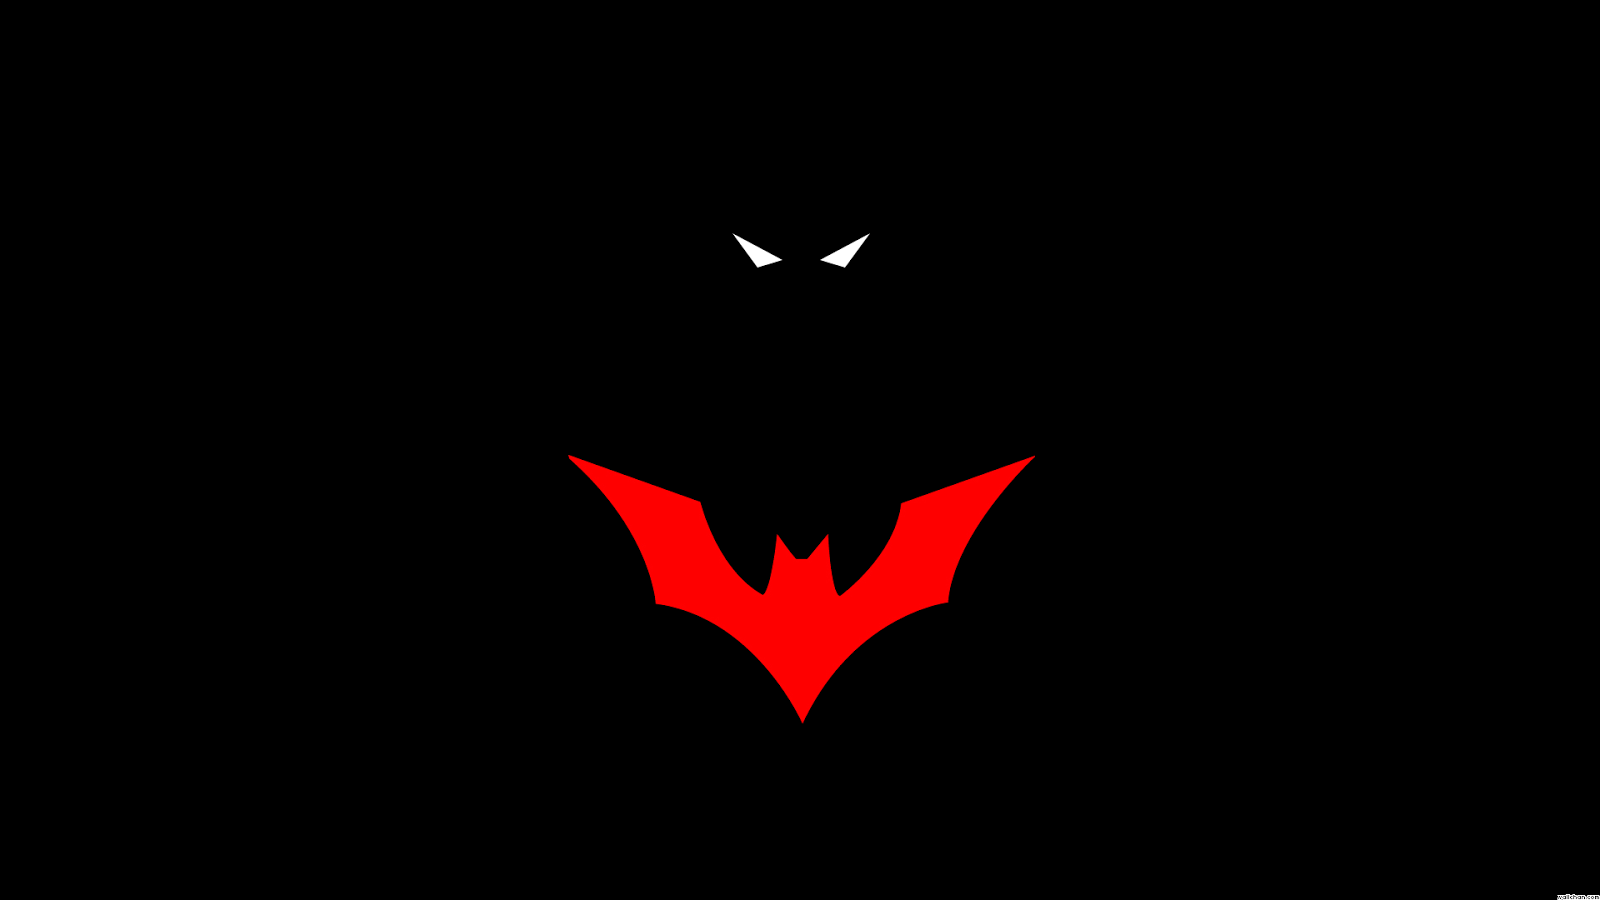 Batman Beyond Wallpapers | HD Wallpapers, HD Pictures, HD Screensavers, Background Images free